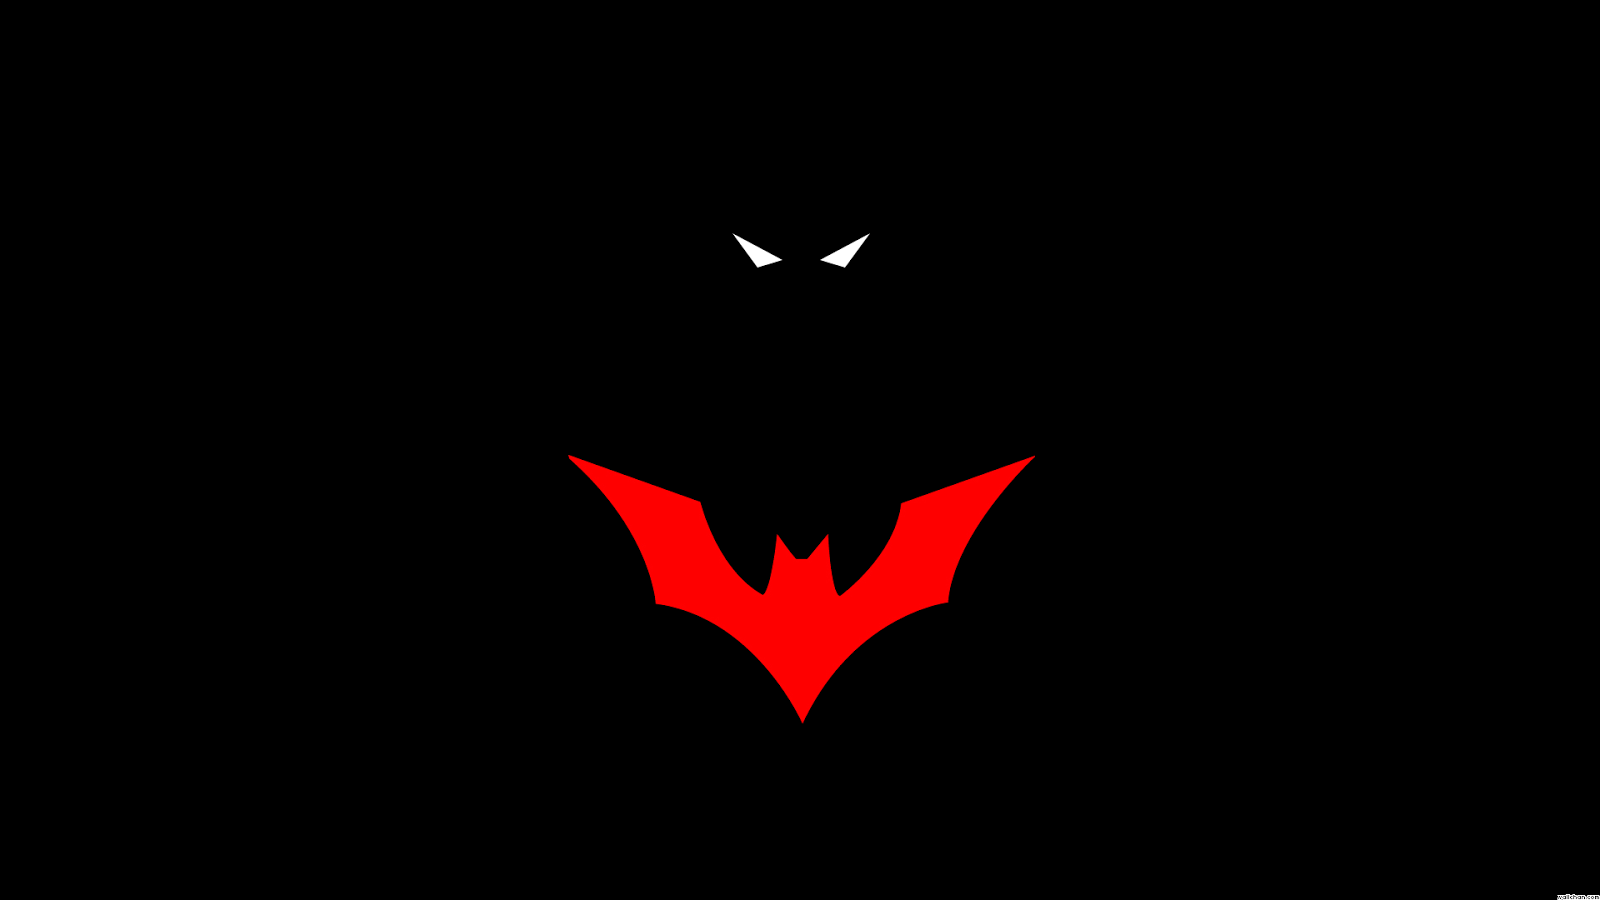 Batman Beyond Wallpapers | HD Wallpapers, HD Pictures, HD Screensavers, Background Images free